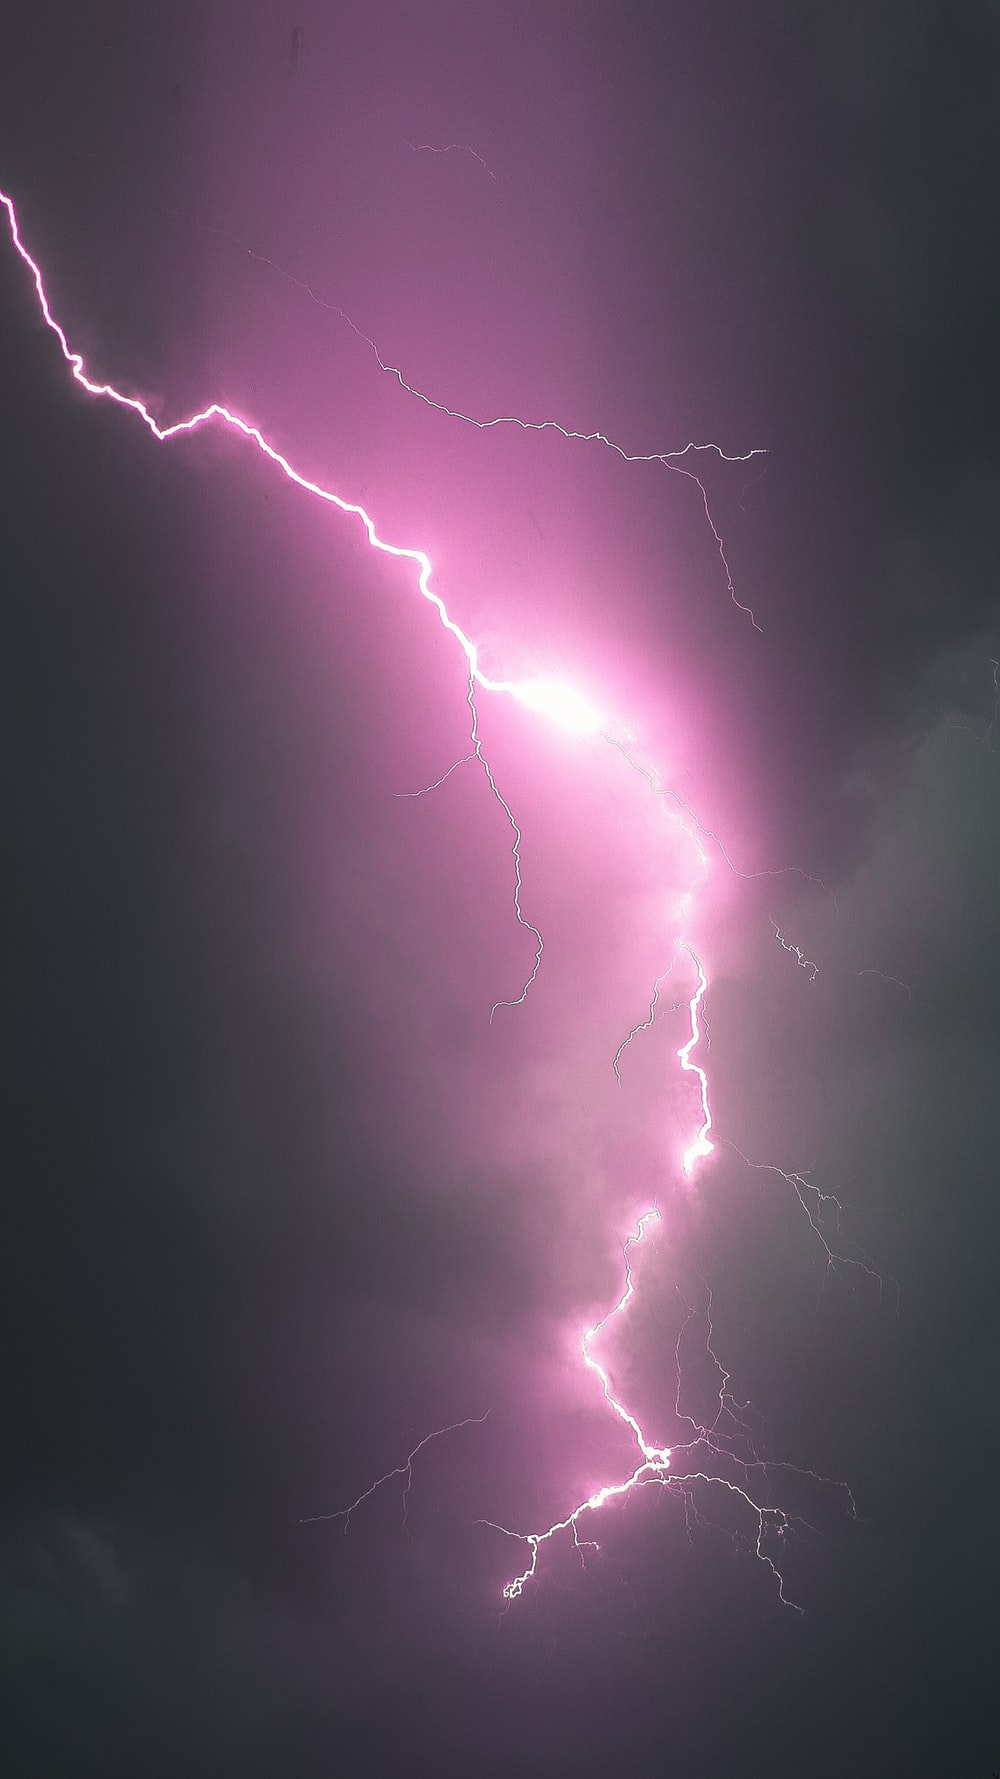 500 Lightning Images Download Free Images On Unsplash If you have your own one, just send us the image and we will show. 500 lightning images download free